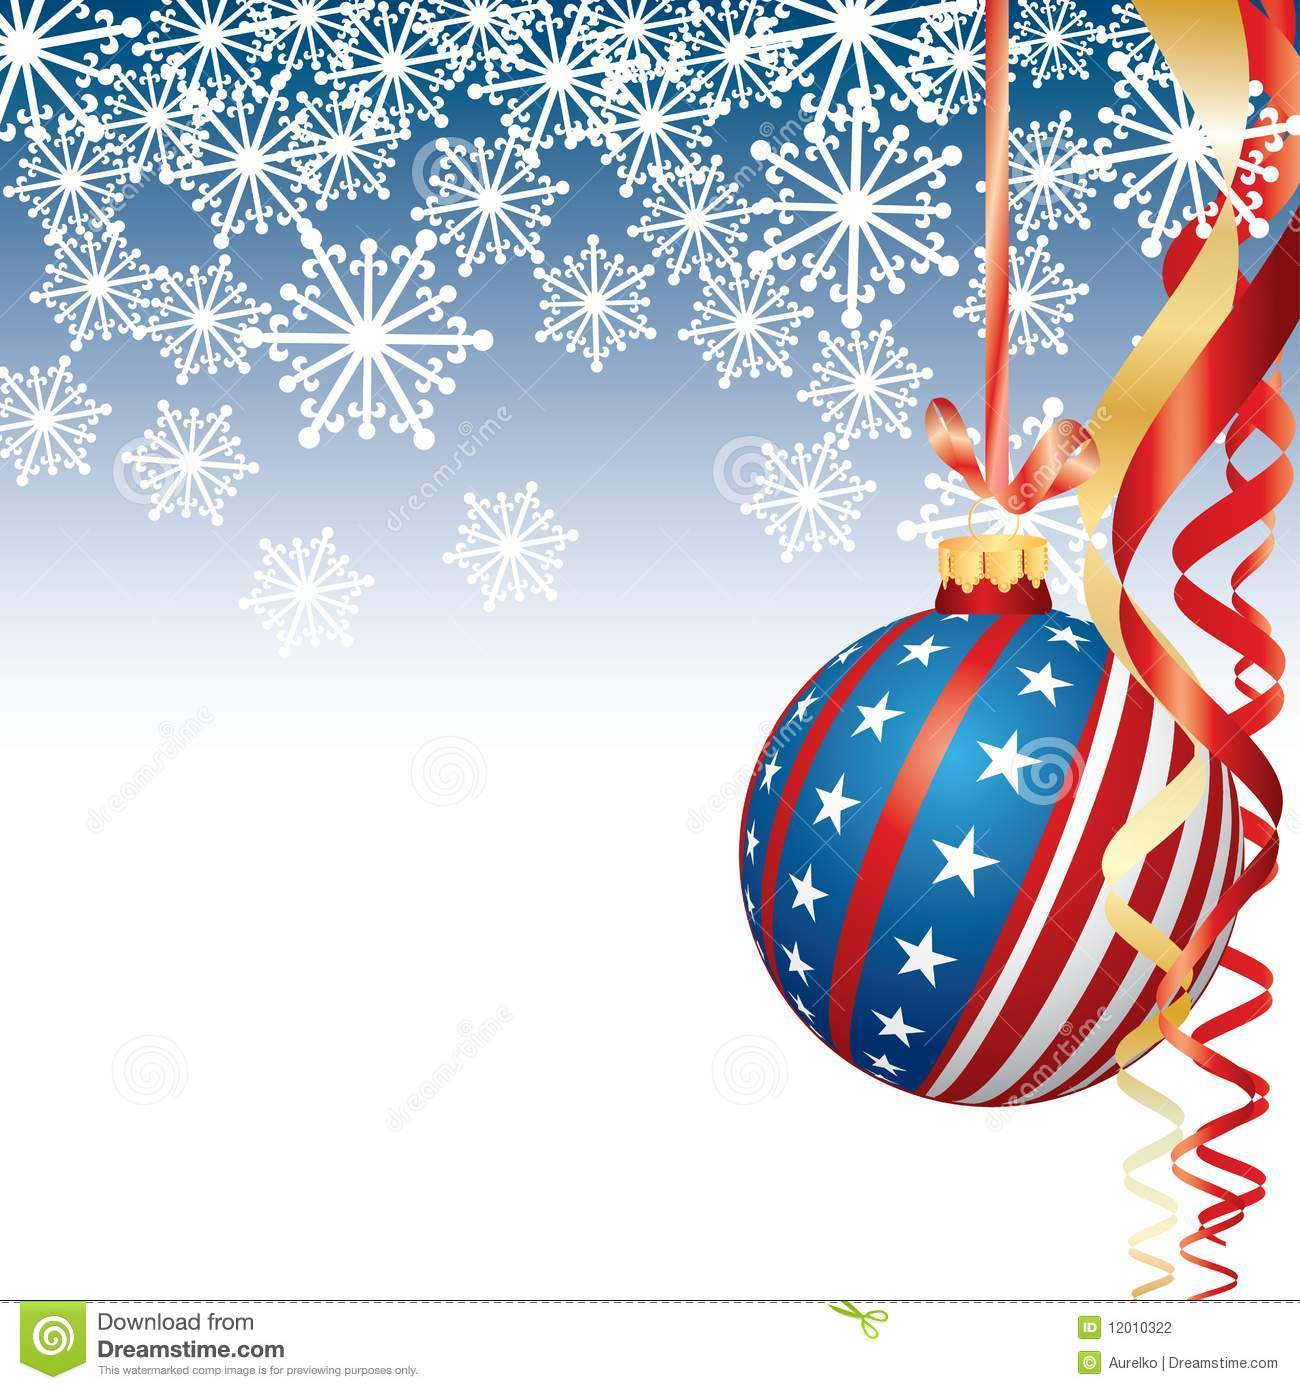 Patriotic Christmas Stock Photography - Image: 12010322